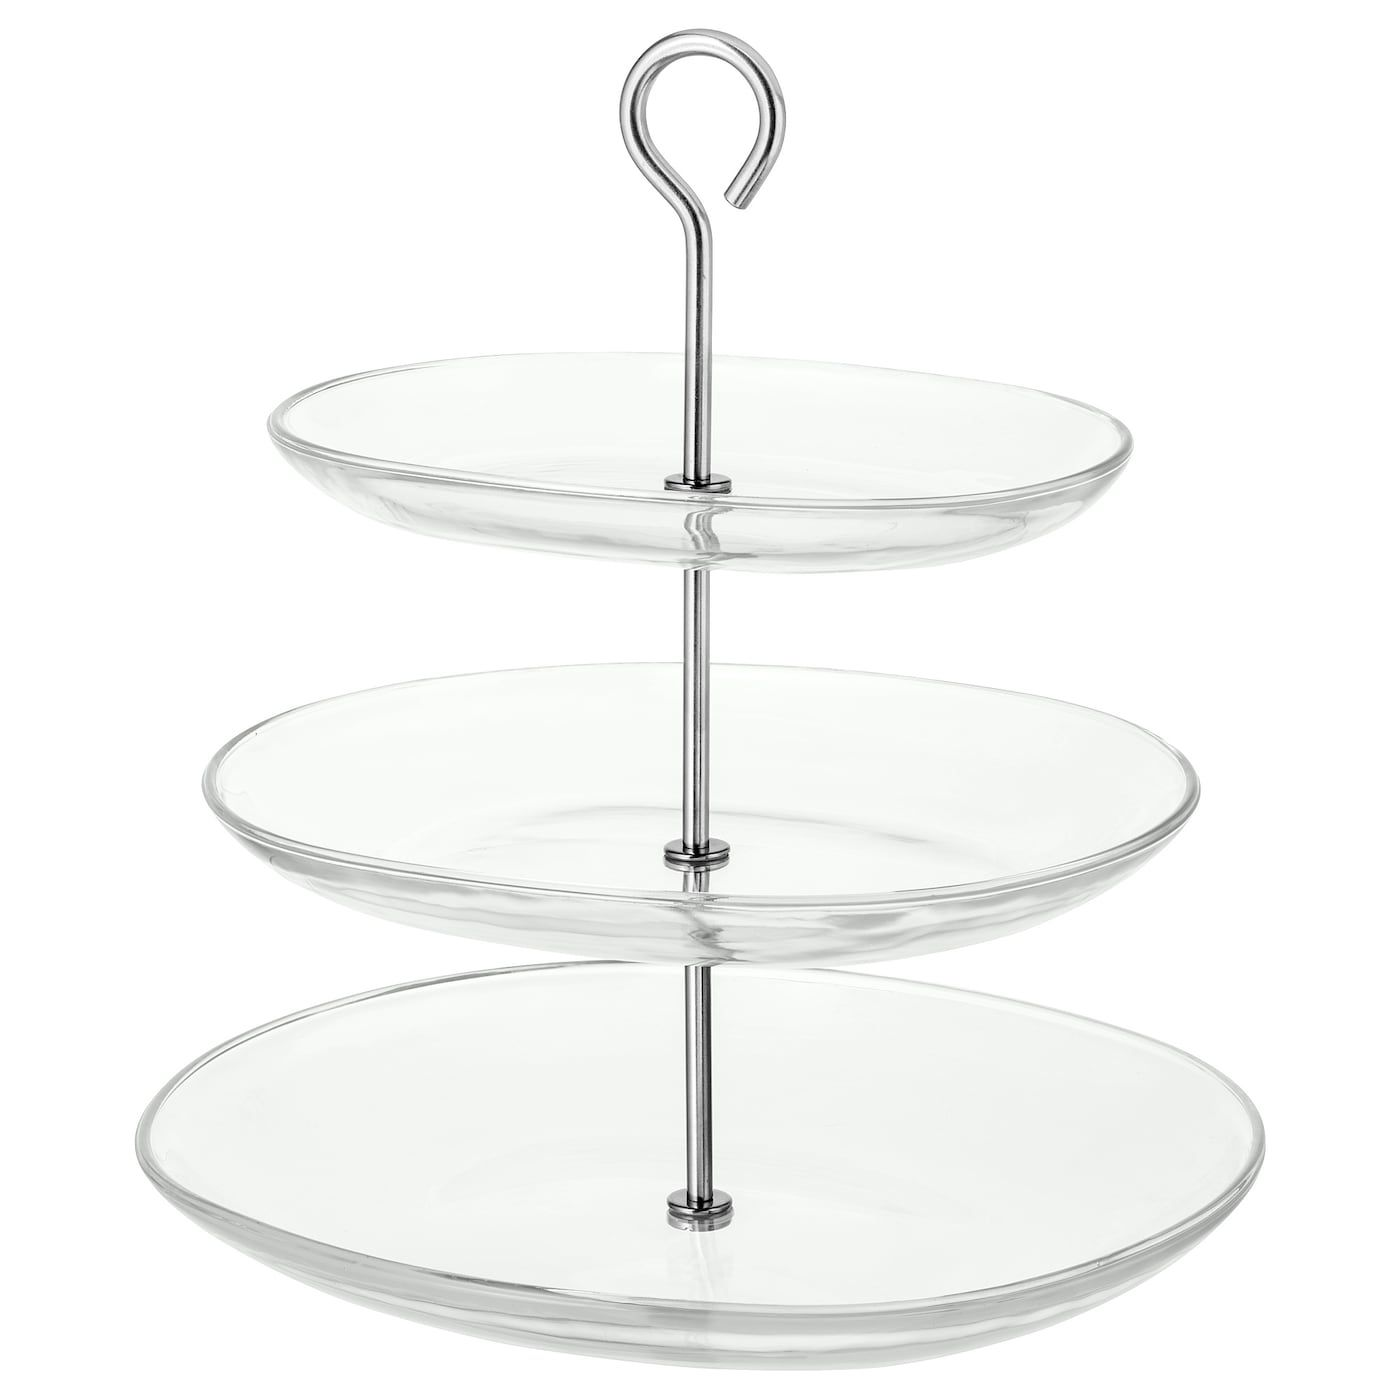 Kvittera Serving Stand 3 Tiers Clear Glass Stainless Steel In 2020 Clear Glass Cake Stand With Lid Plates